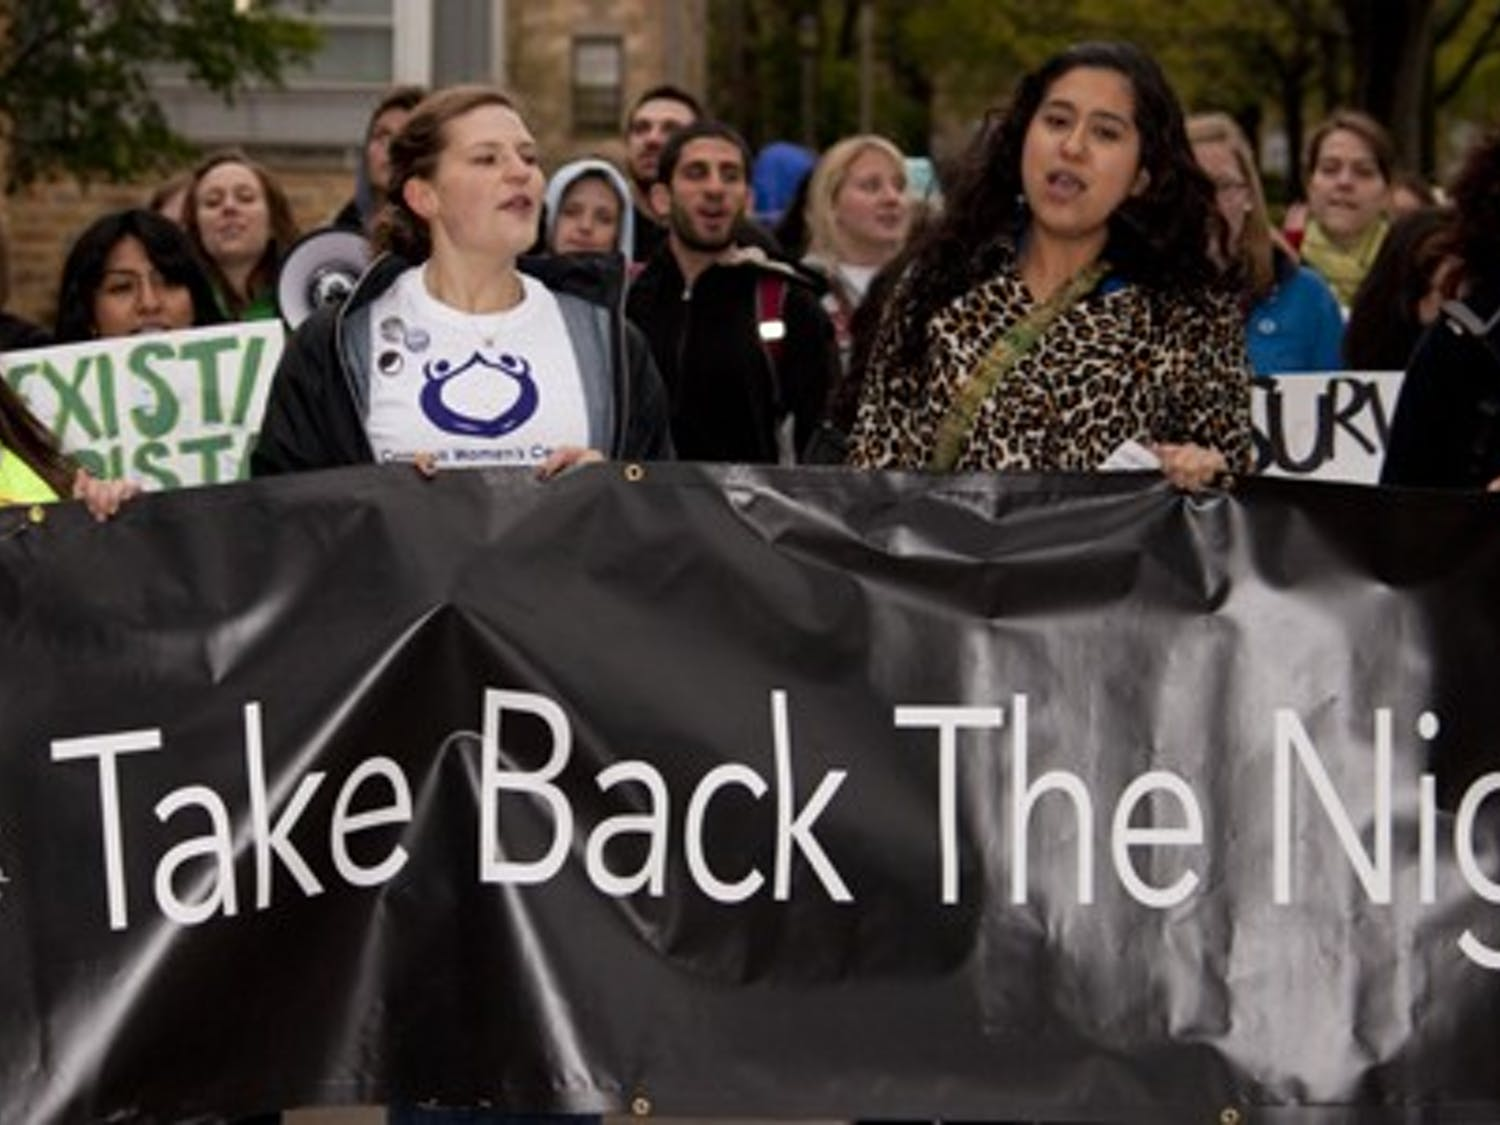 take back the night 04202012